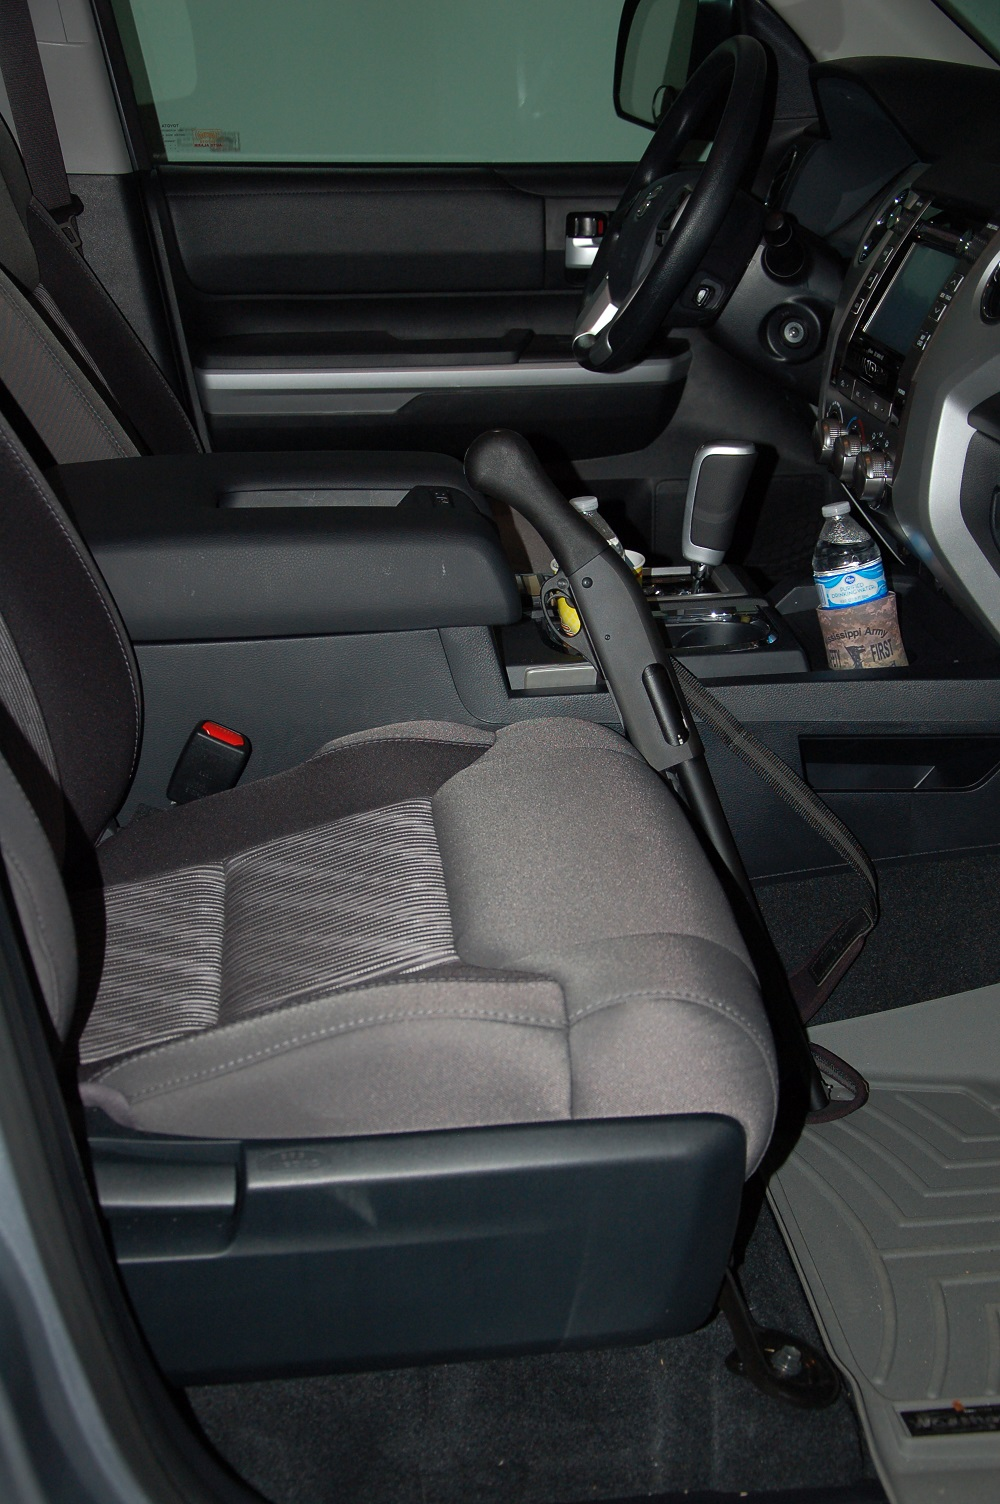 Keeping Guns in Vehicles Safely